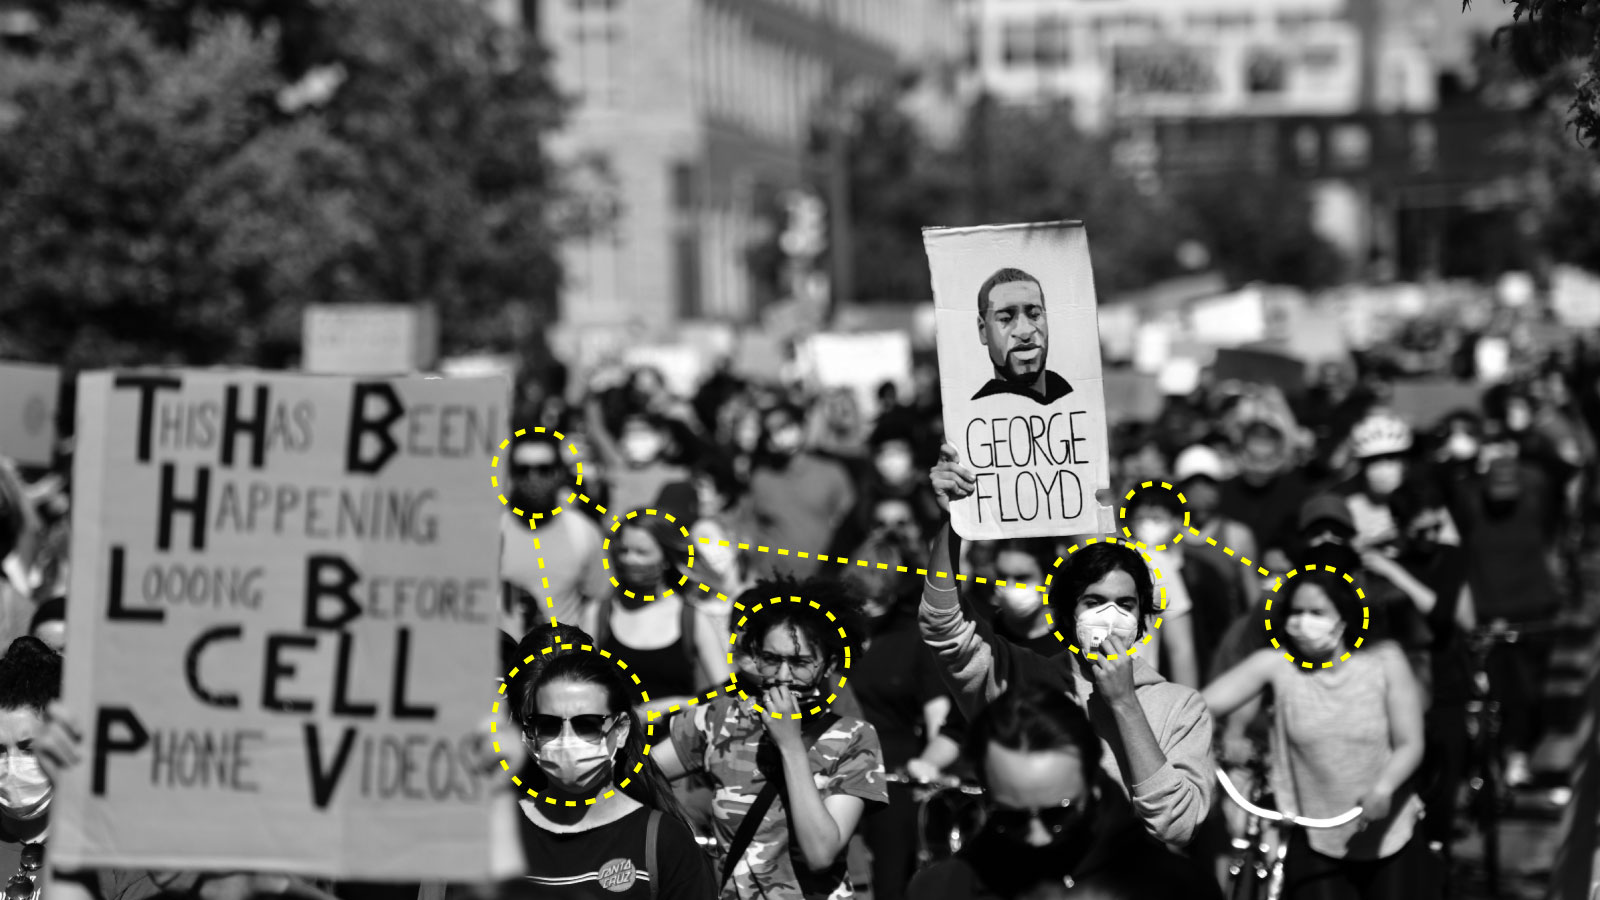 Photograph of a BLM protest with surveillance network drawn over it